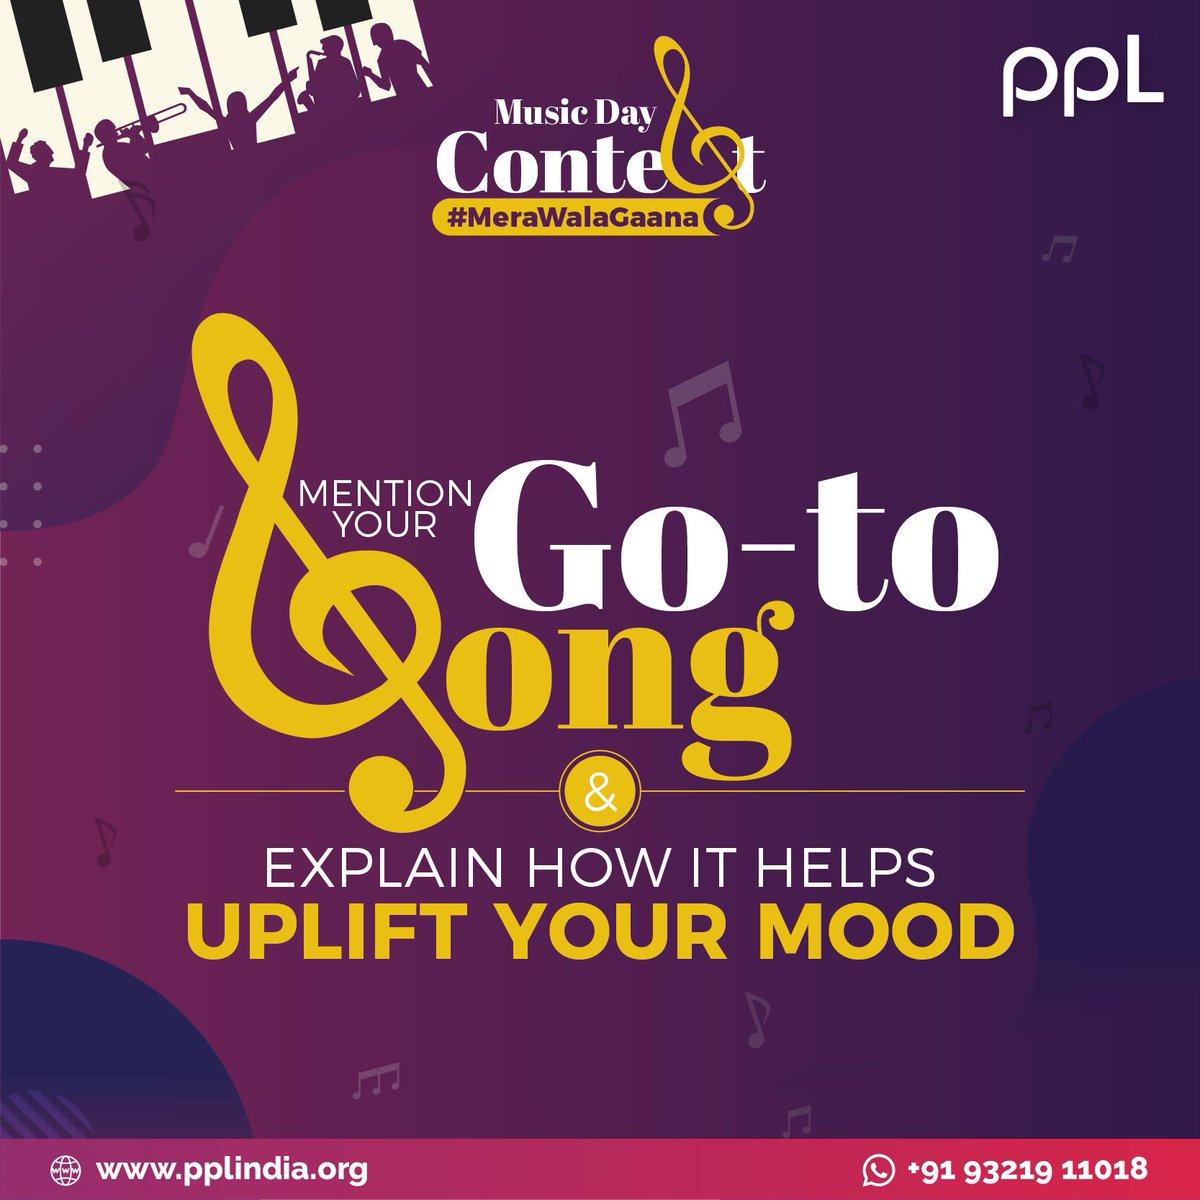 #ContestAlert Music Day is on the way, let's celebrate it our way! Comment below your go-to song and explain how it helps uplift your mood. #MeraWalaGaana  #PPLIndia #Music #PlayMusicByTheRules #MusicDay #Contest #StayTuned #Giveaway #ContestOfTheMonth #Win https://t.co/2bOK264A4H